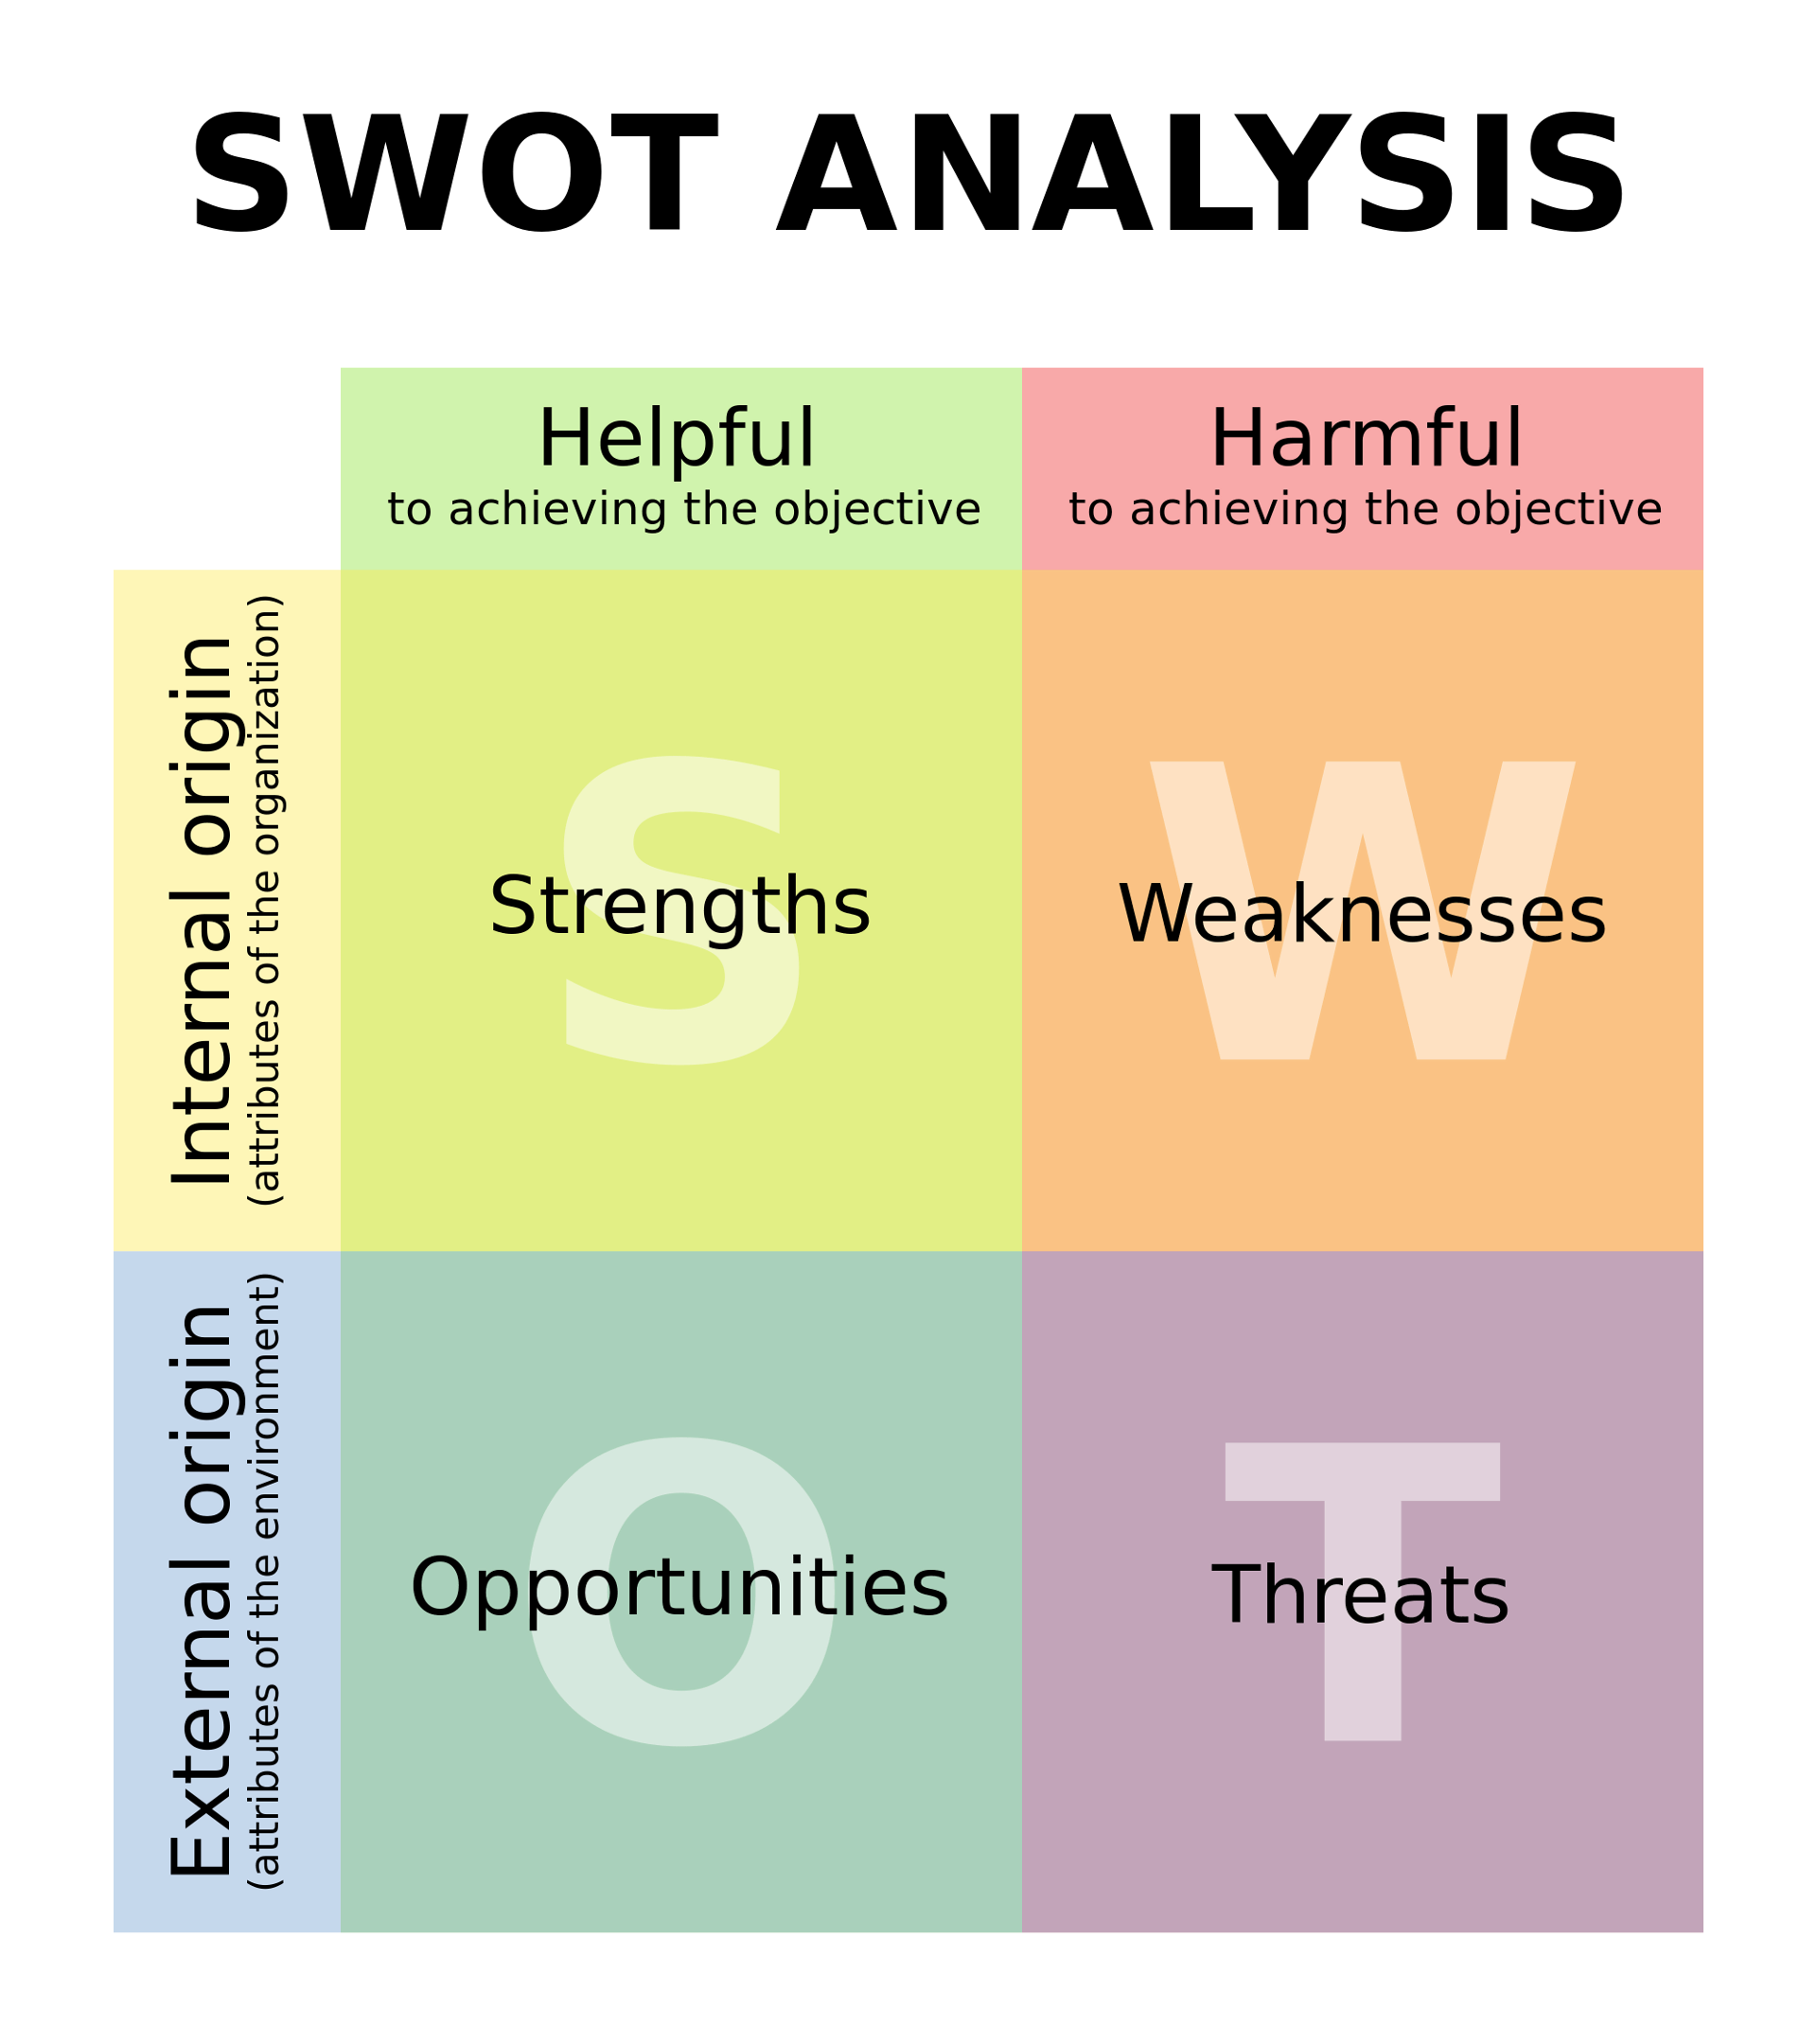 swot analysis for personal improvement ideas switching medium